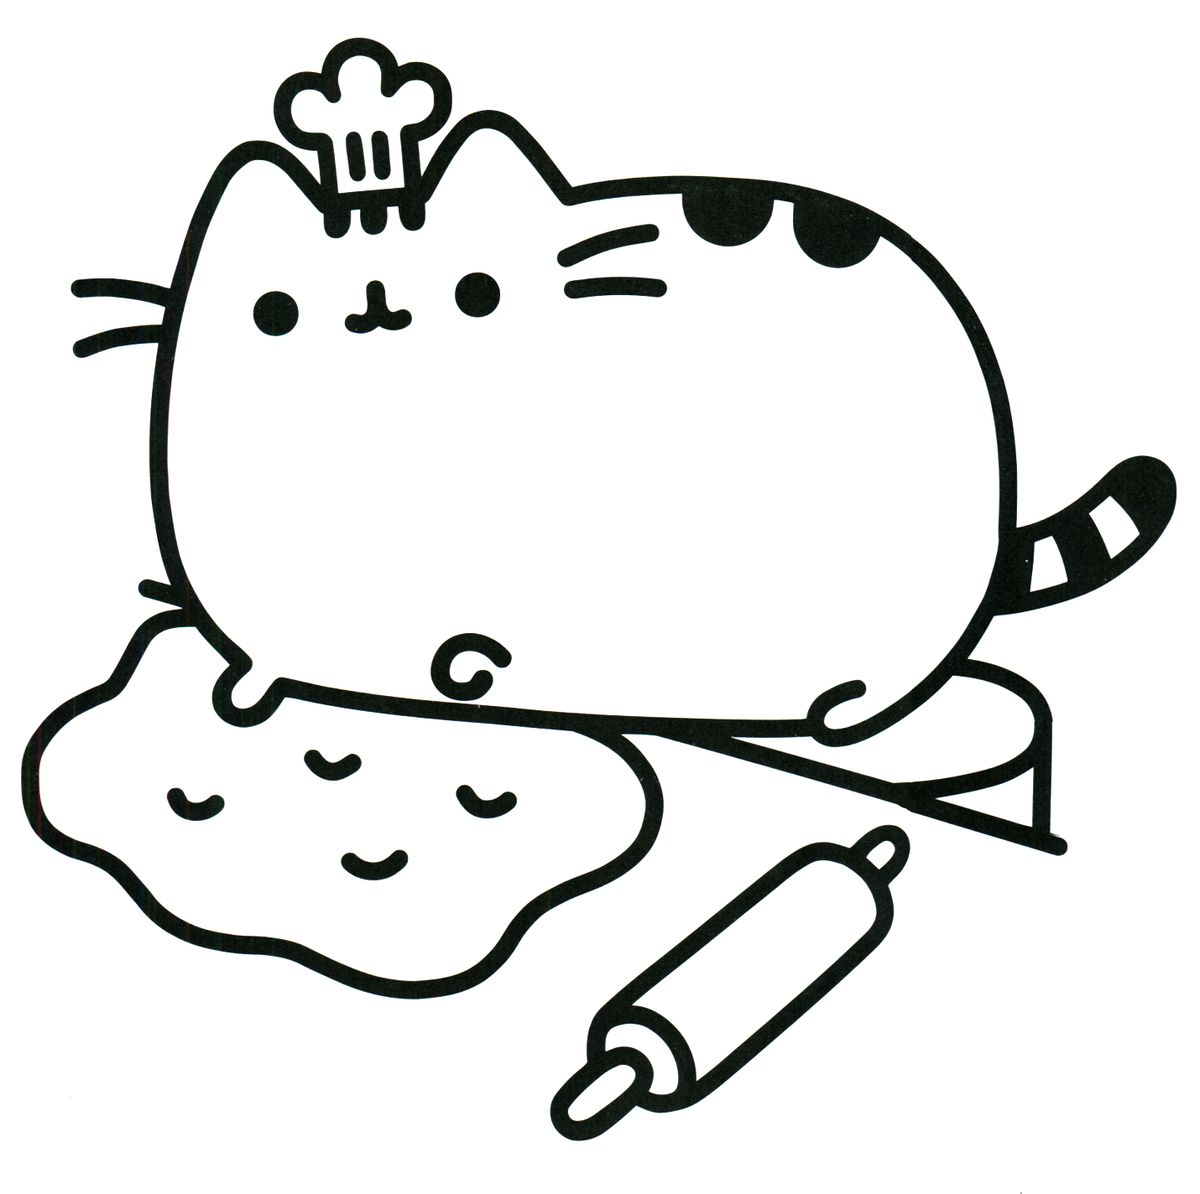 Nyan Cat Drawing At Getdrawings Com Free For Personal Use